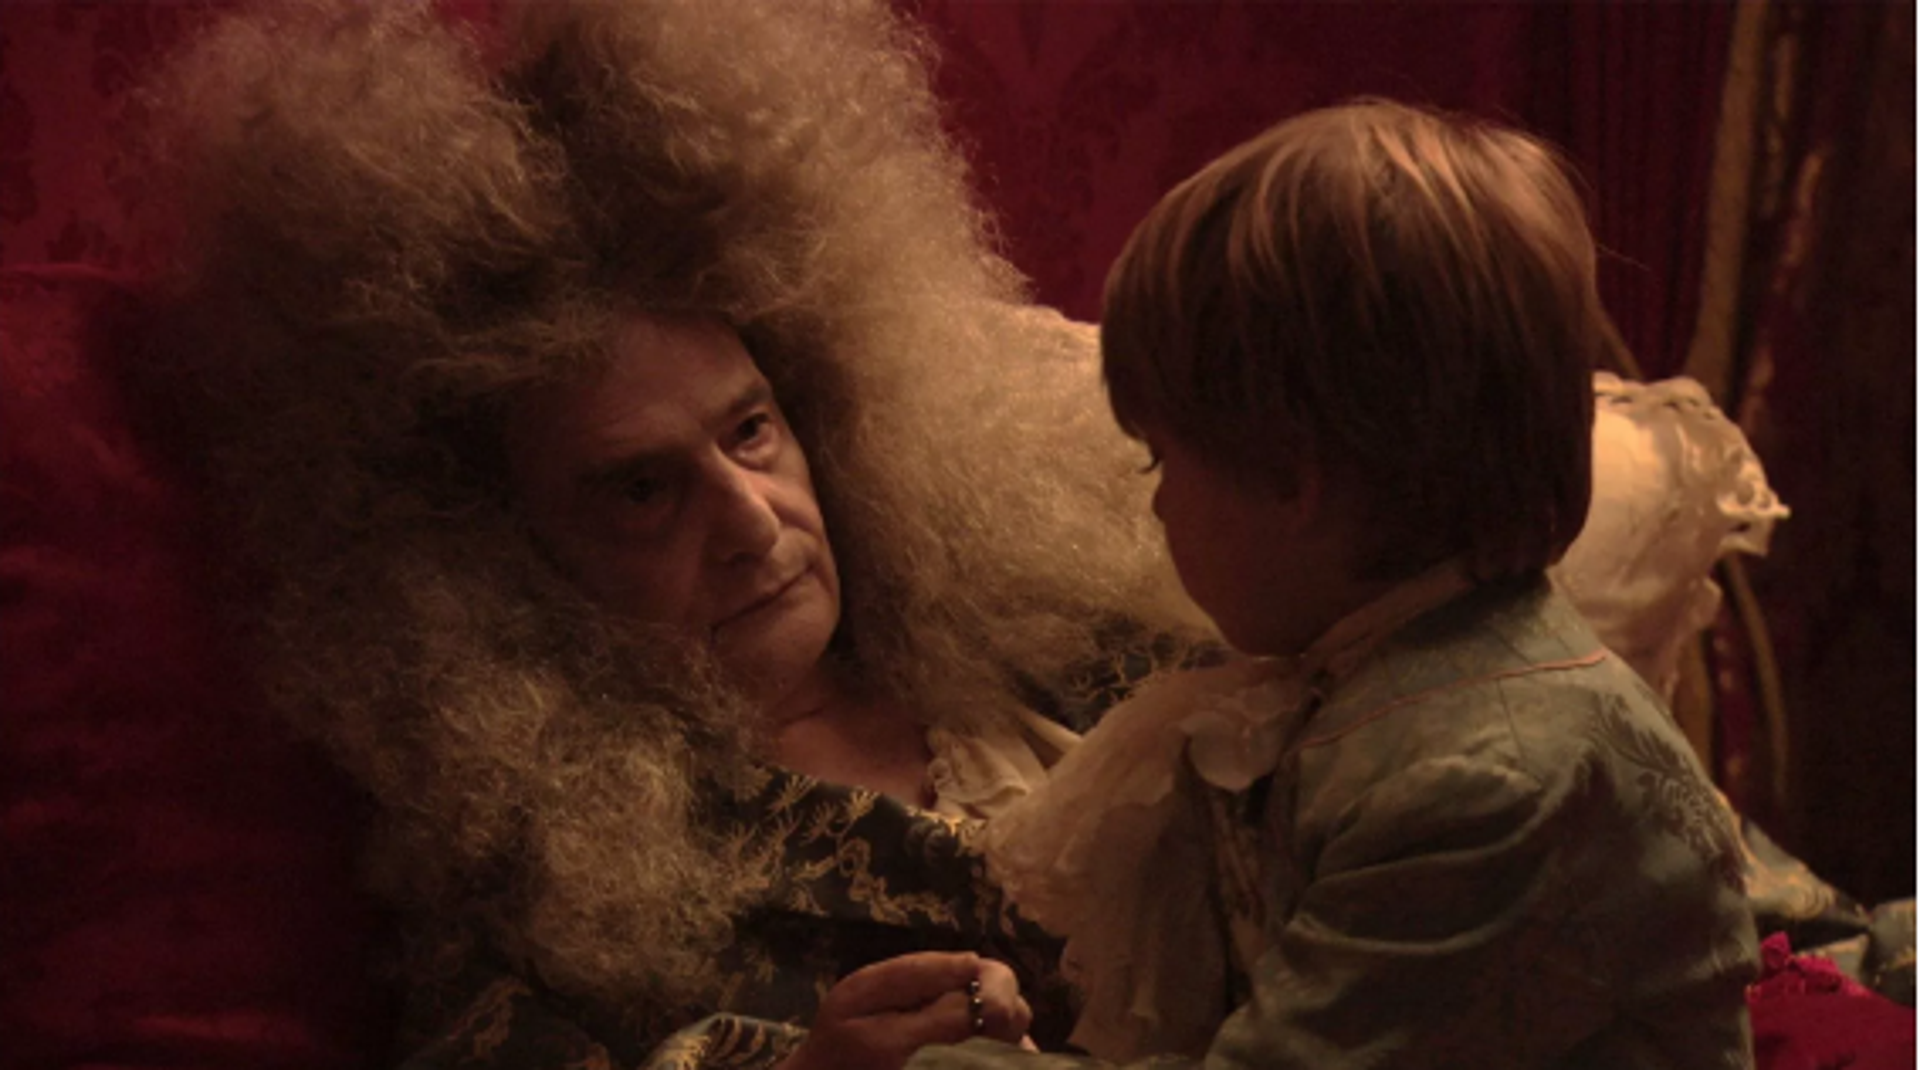 """Frame from """"The Death of Louis XIV"""" by Catalan director Albert Serra"""